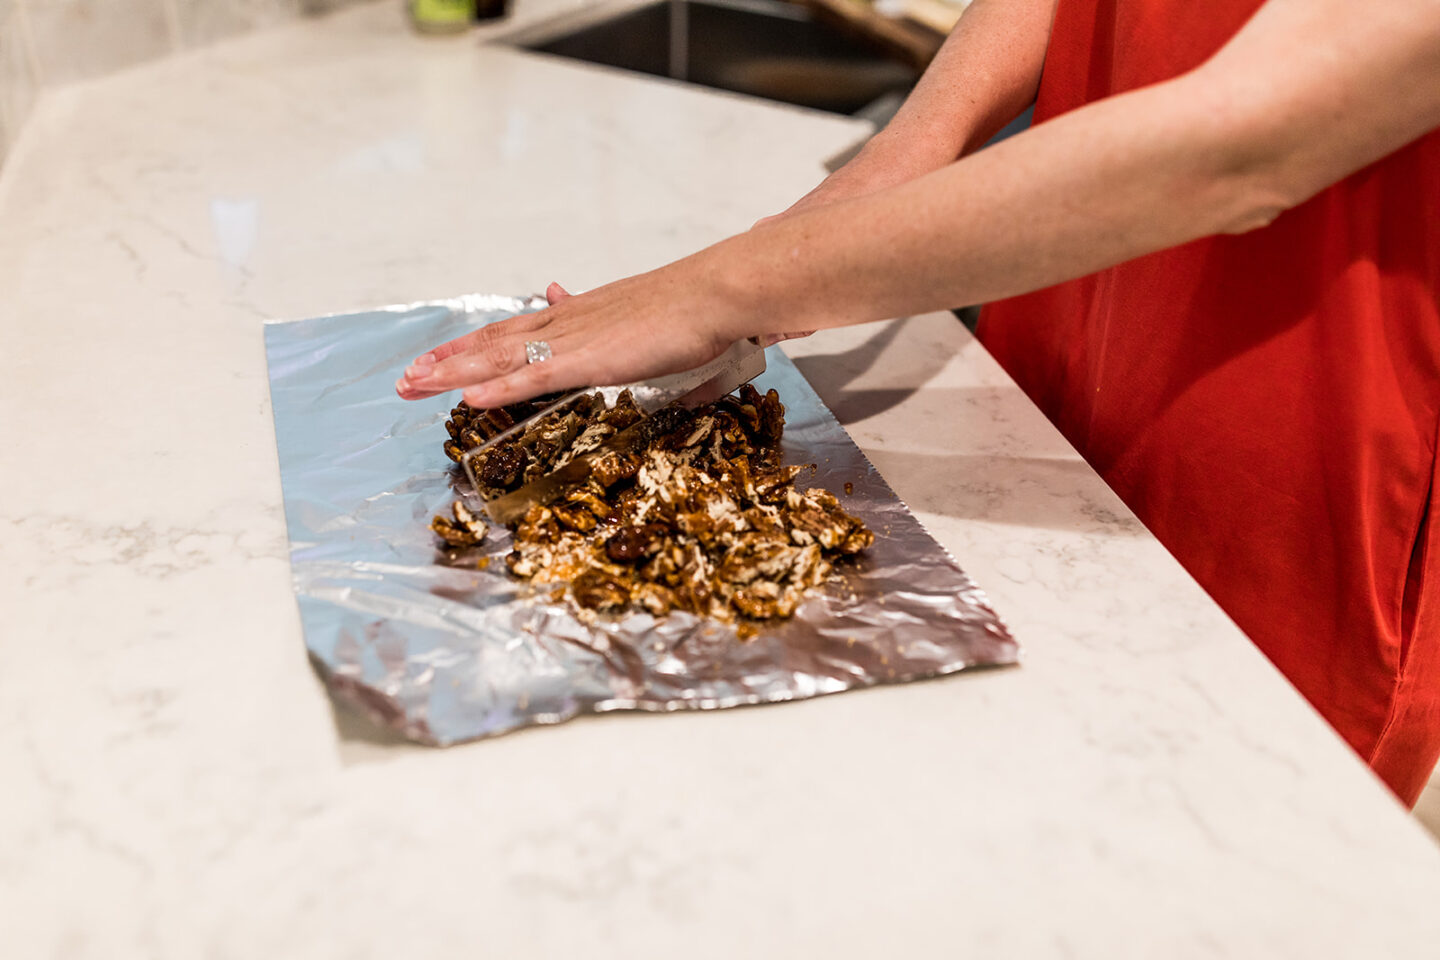 Simple Candied Pecans Recipe featured by top Atlanta lifestyle blogger, Moderately High Maintenance   Candied Pecans Recipe by pouplar Atlanta lifestyle blog, Moderately High Maintenance: image of a woman chopping some candied pecans on a sheet of tinfoil.